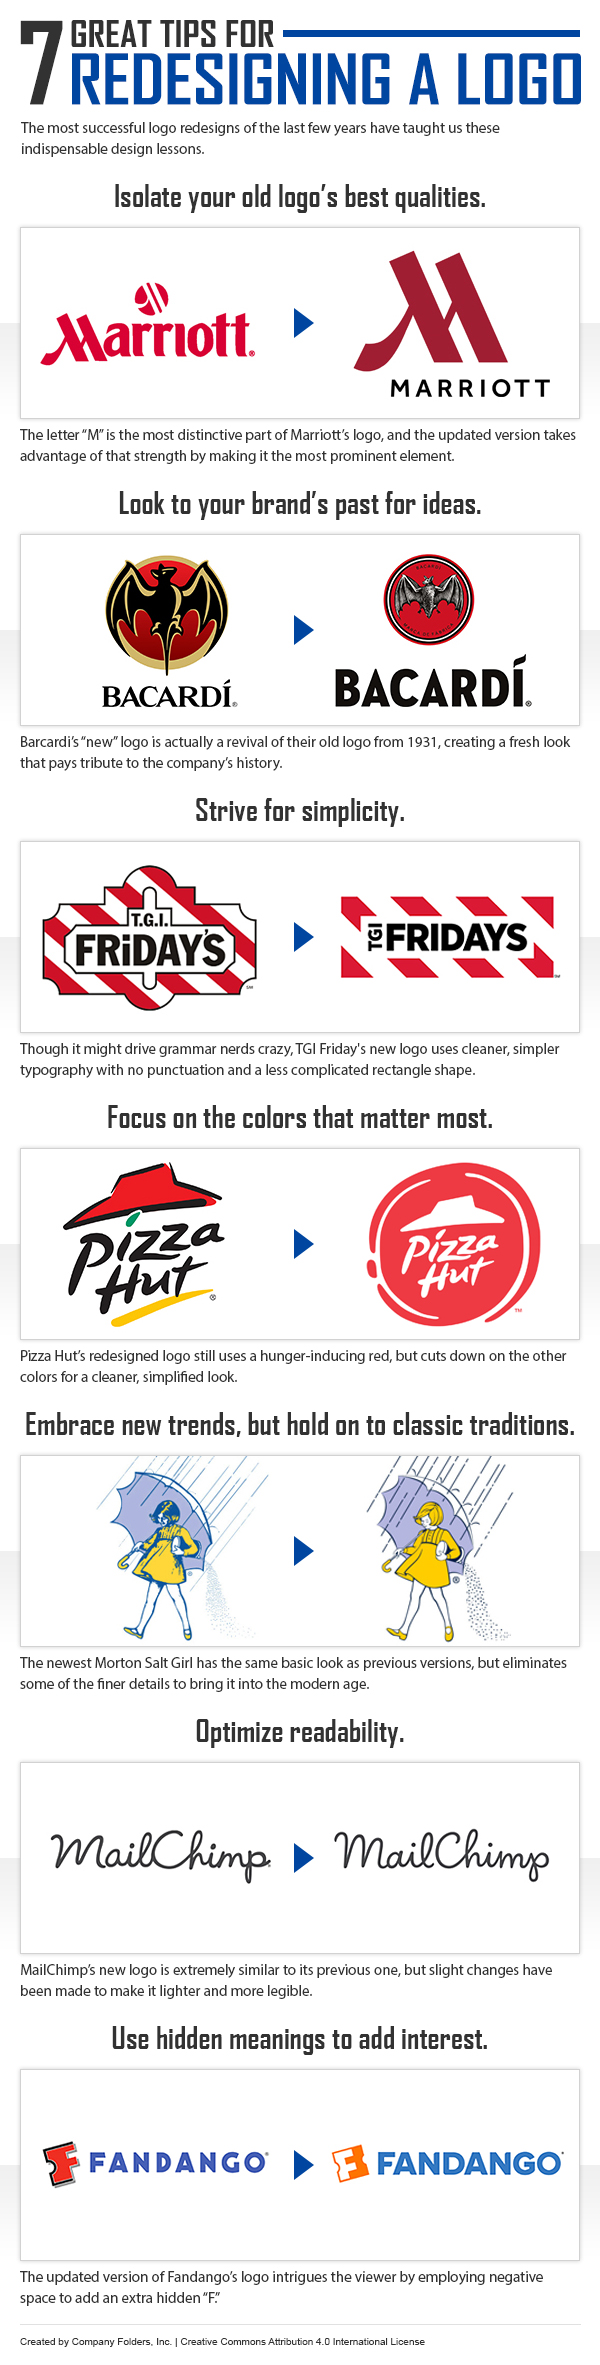 7 Quick Tips for Redesigning Your Company Logo